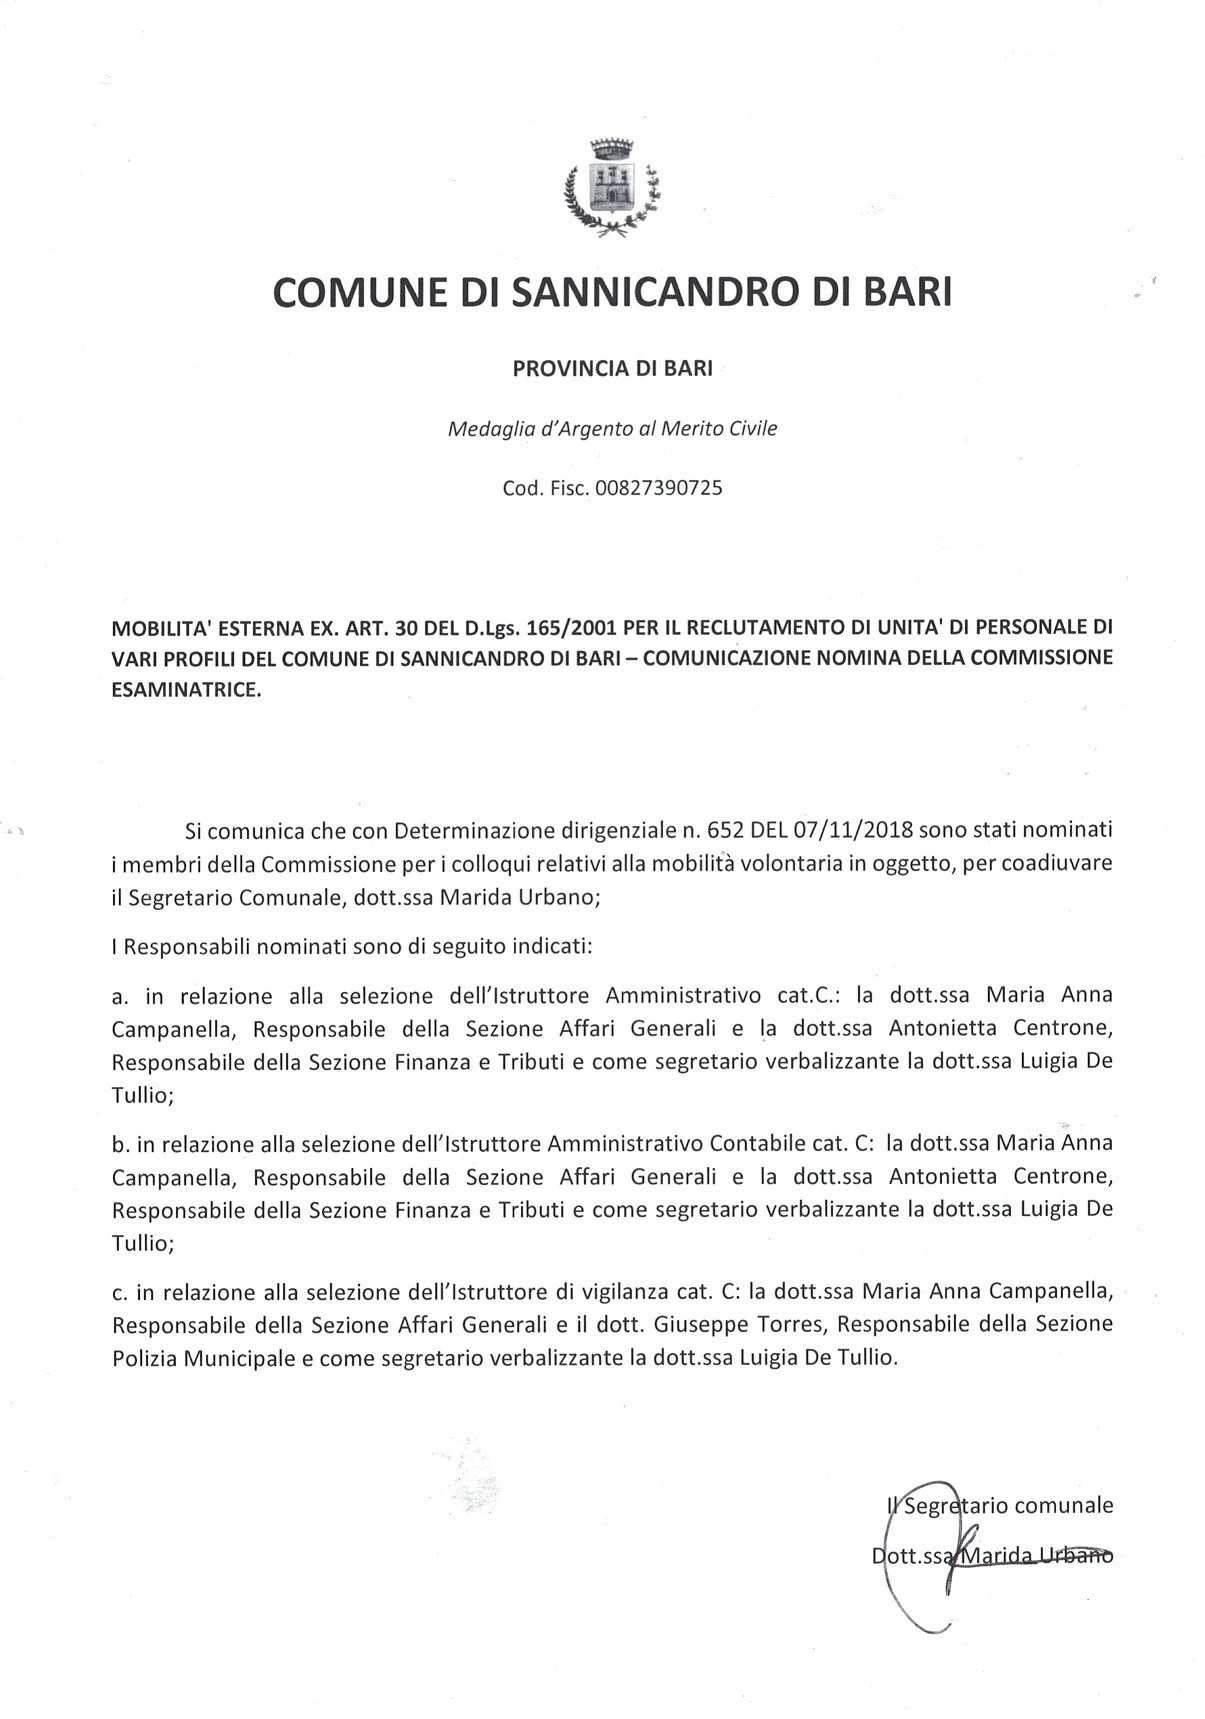 nomina commissione.jpg